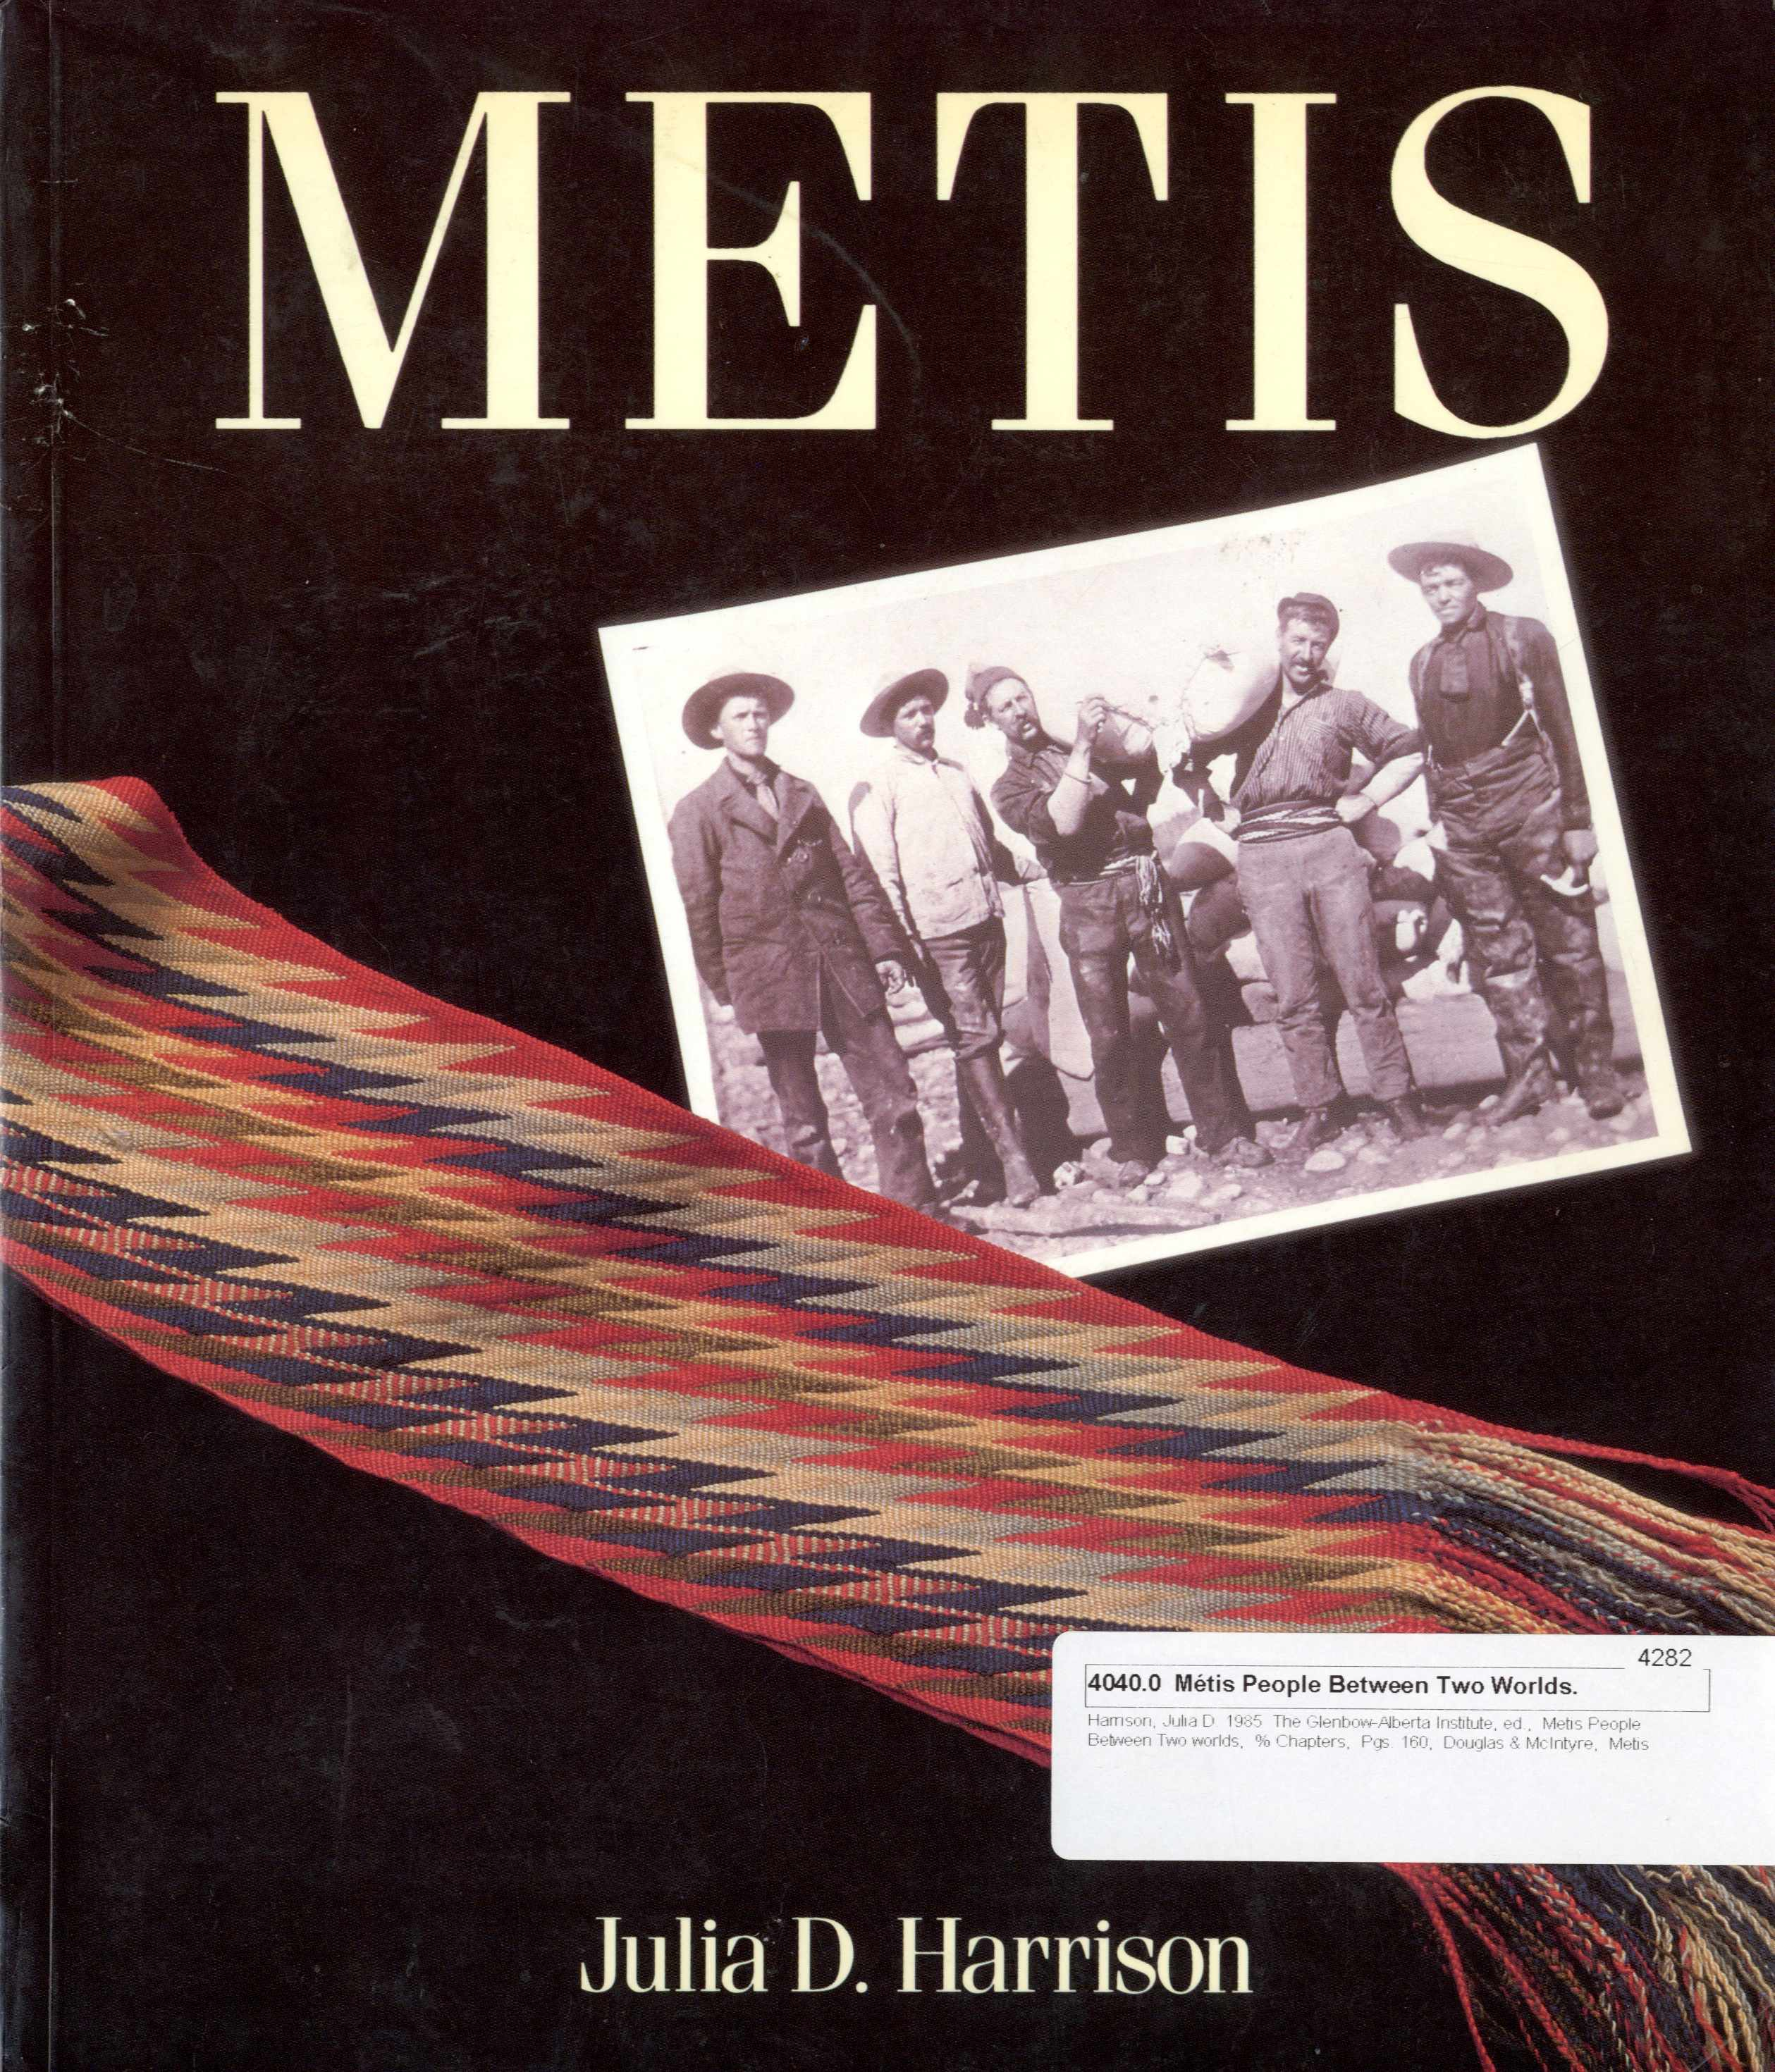 Metis, People Between Two Worlds Image